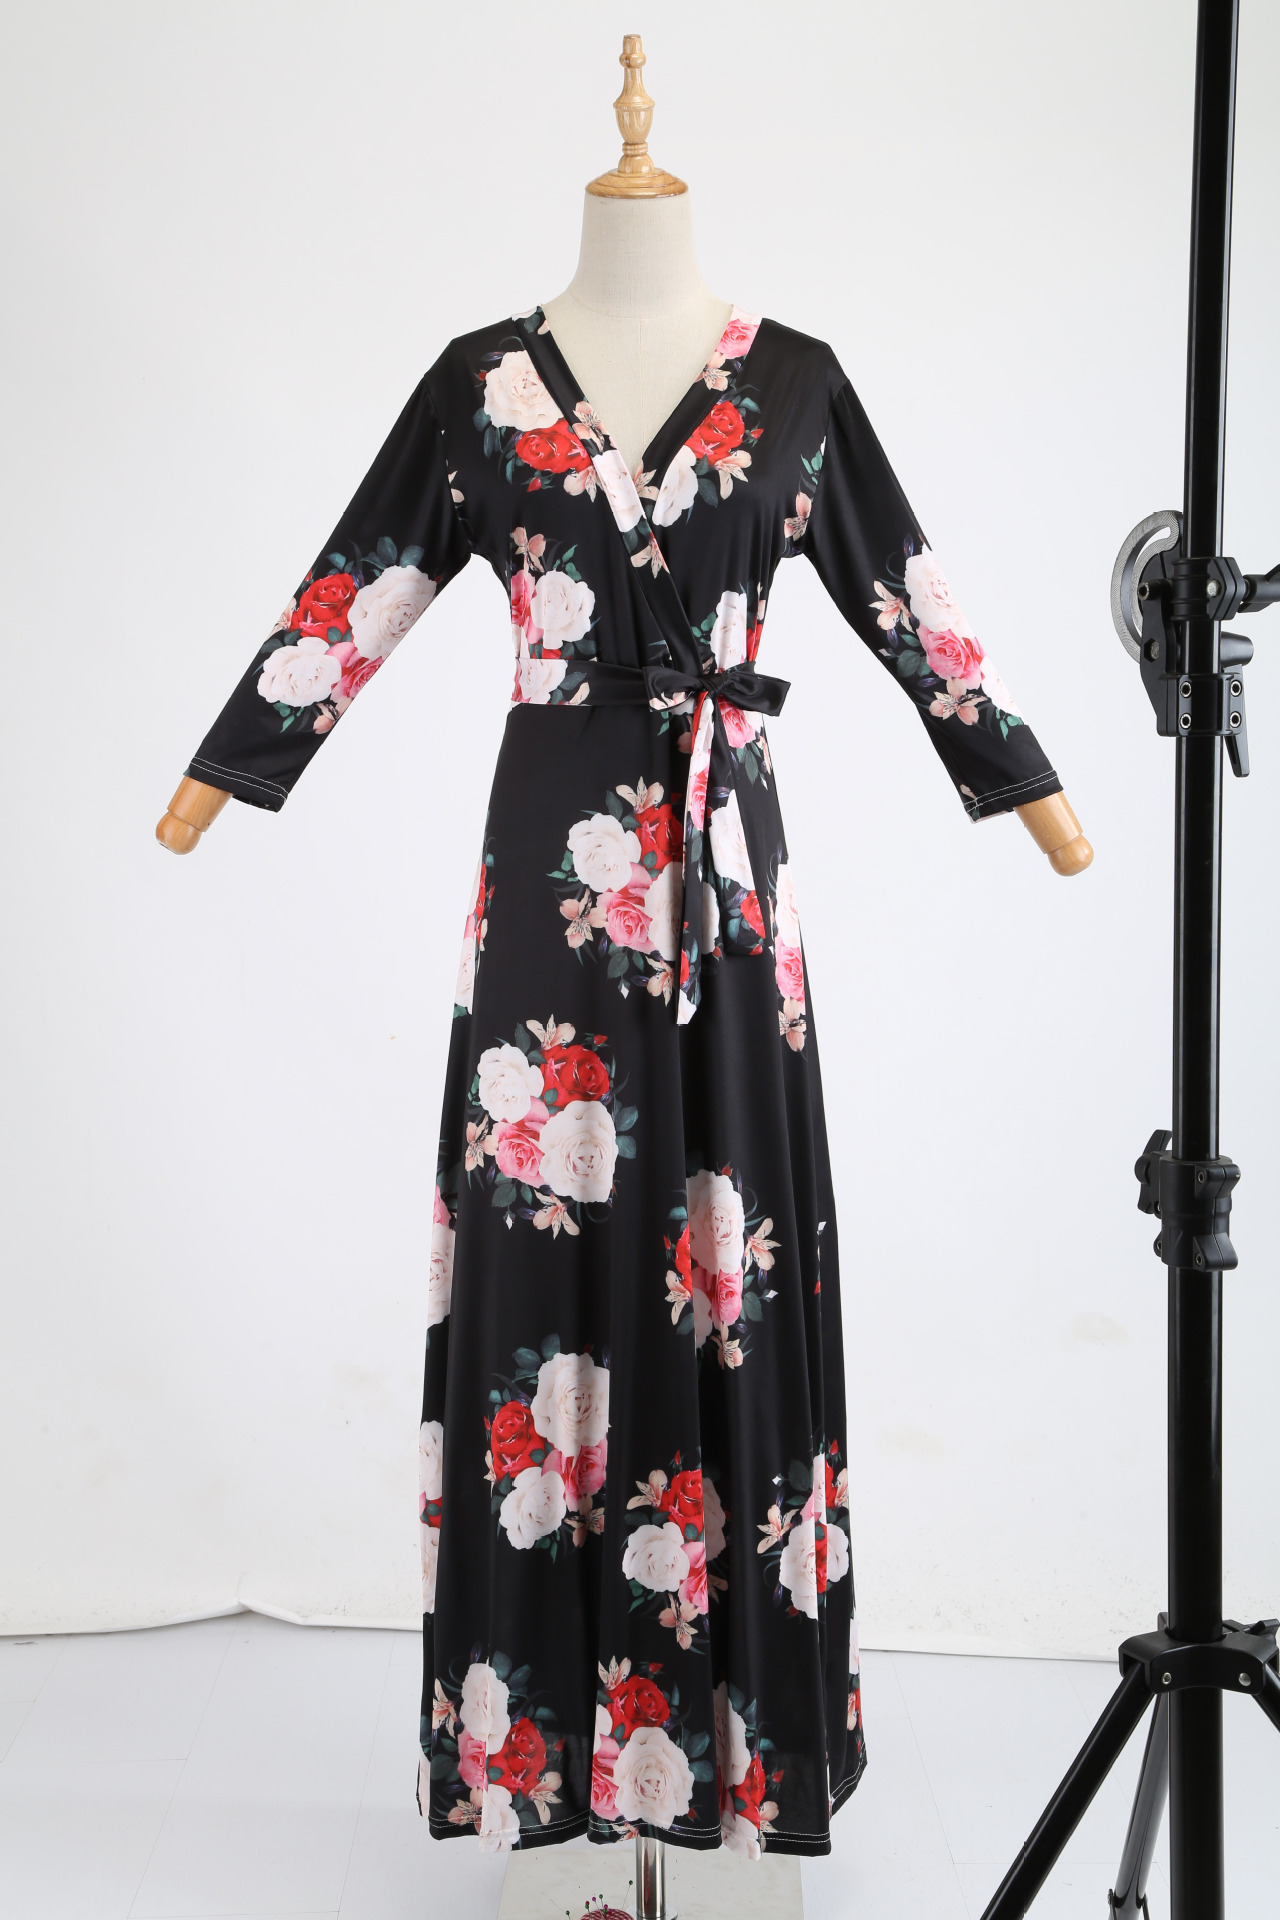 H27fe303e900246809a1d15cf3f4111a1A - Oufisun Spring Sexy Deep V Neck Women's Dress Bohemia Tunic Maxi Dresses Elegant Vintage Flowers Print Dress Vestidos Plus Size